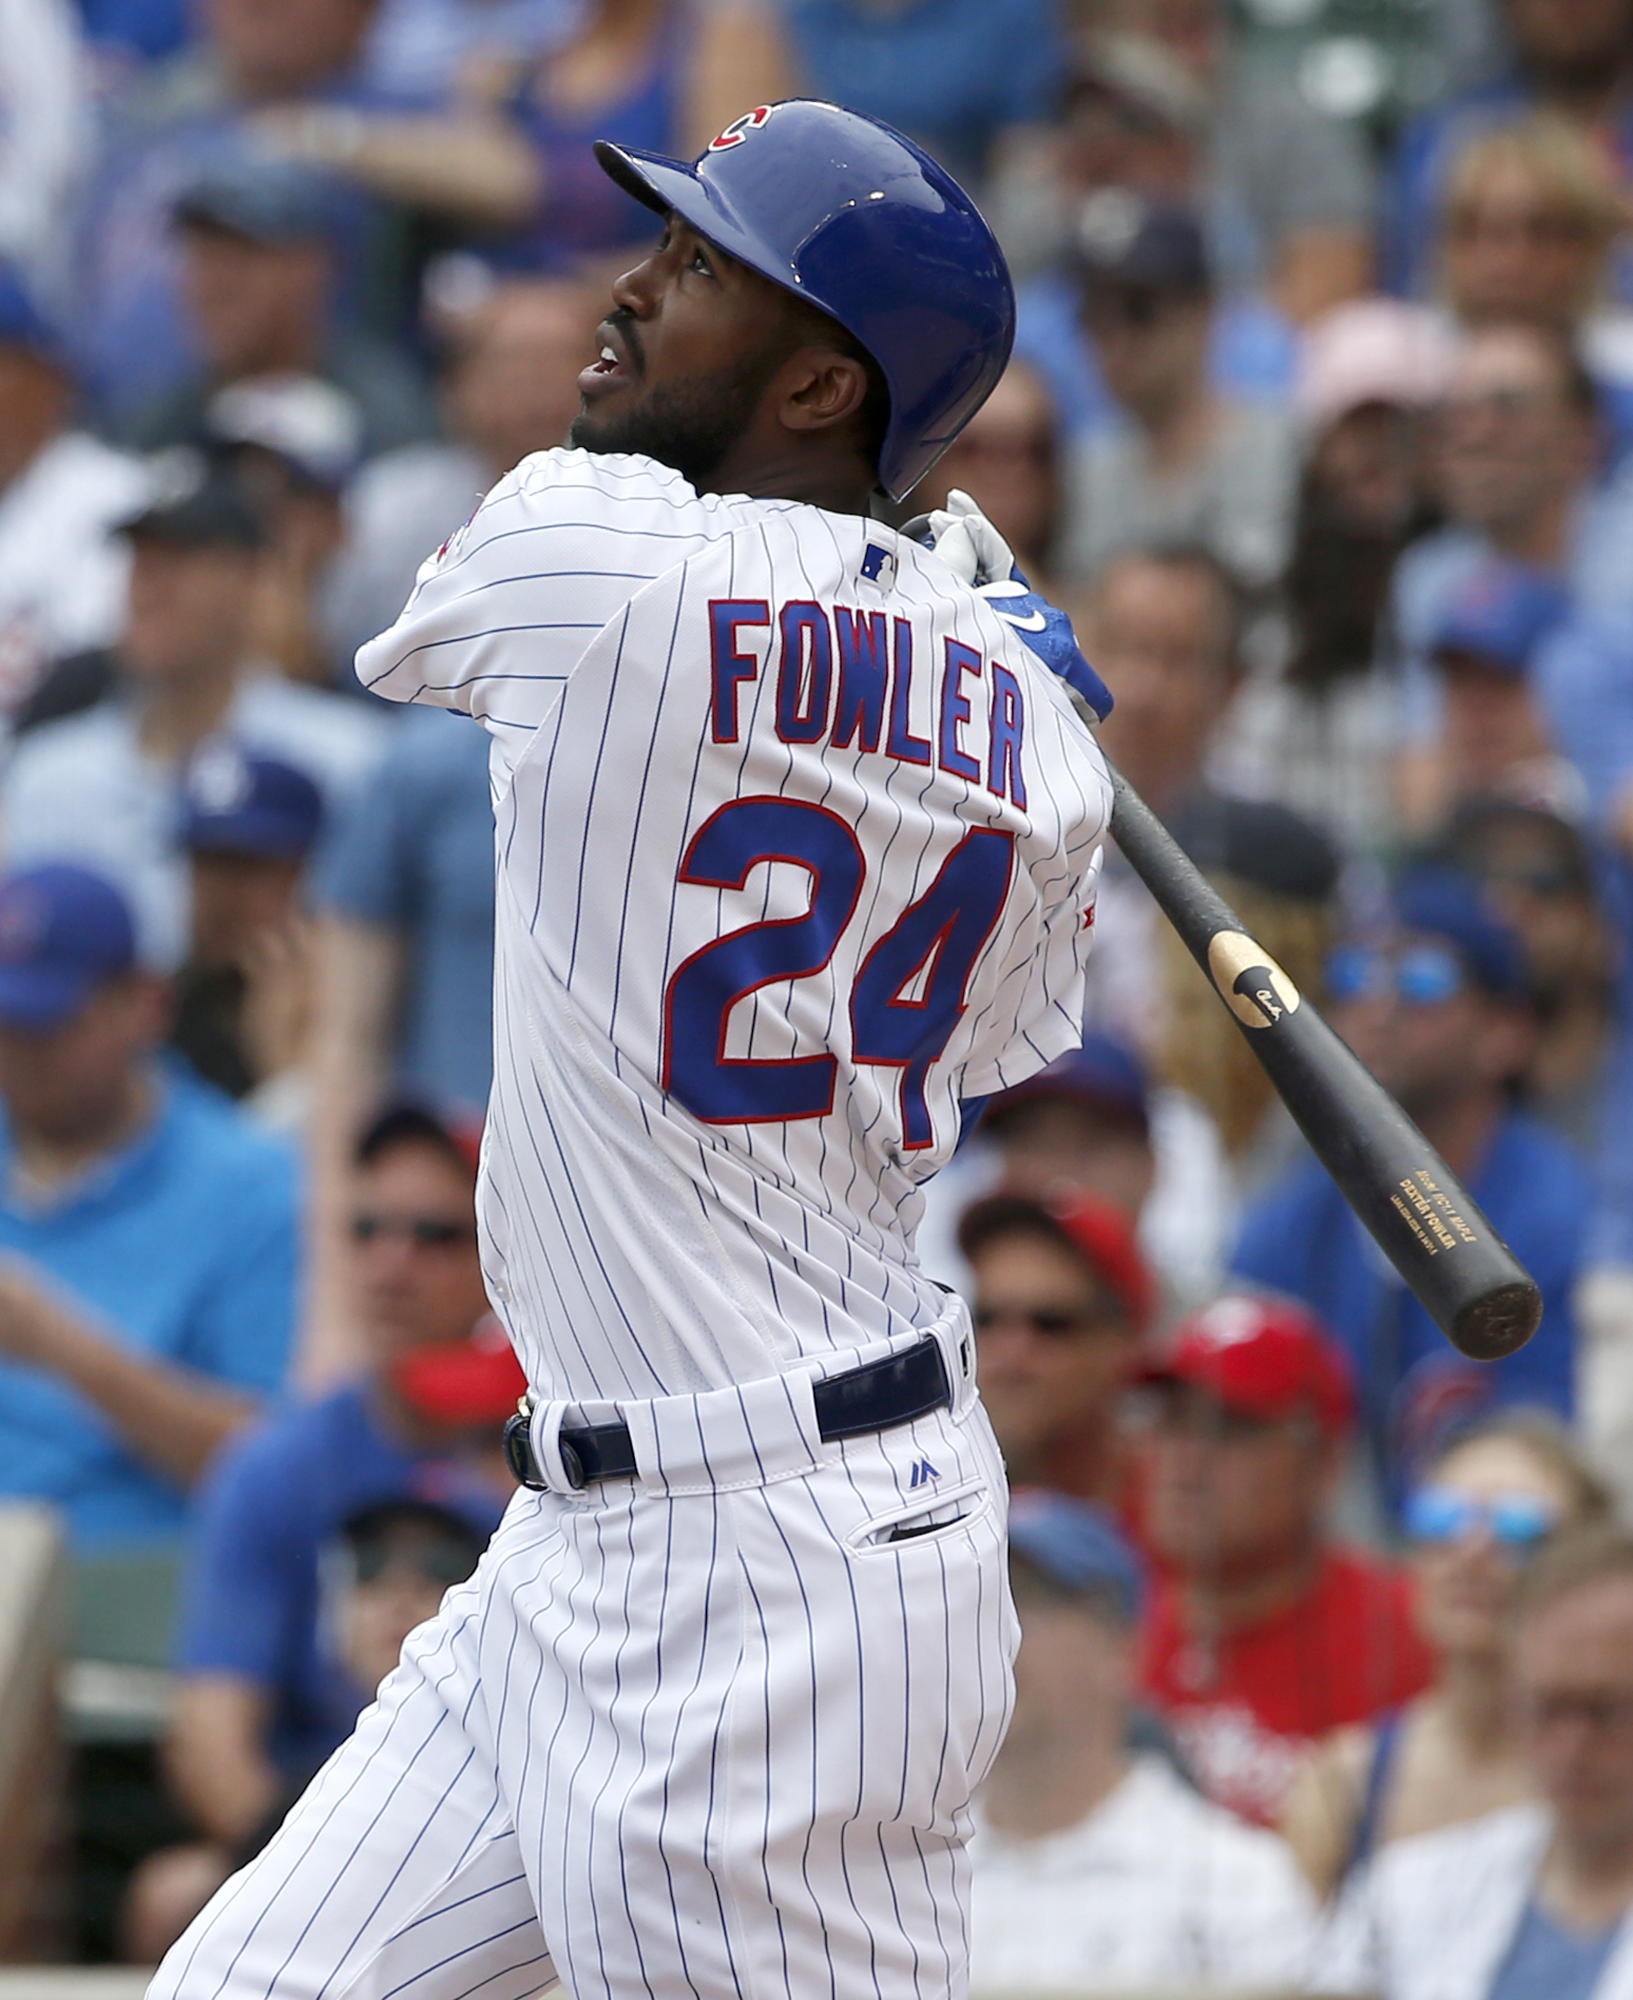 Chicago Cubs' Dexter Fowler watches his a solo home run during the first inning of a baseball game against the Philadelphia Phillies Saturday, May 28, 2016, in Chicago. (AP Photo/Nam Y. Huh)